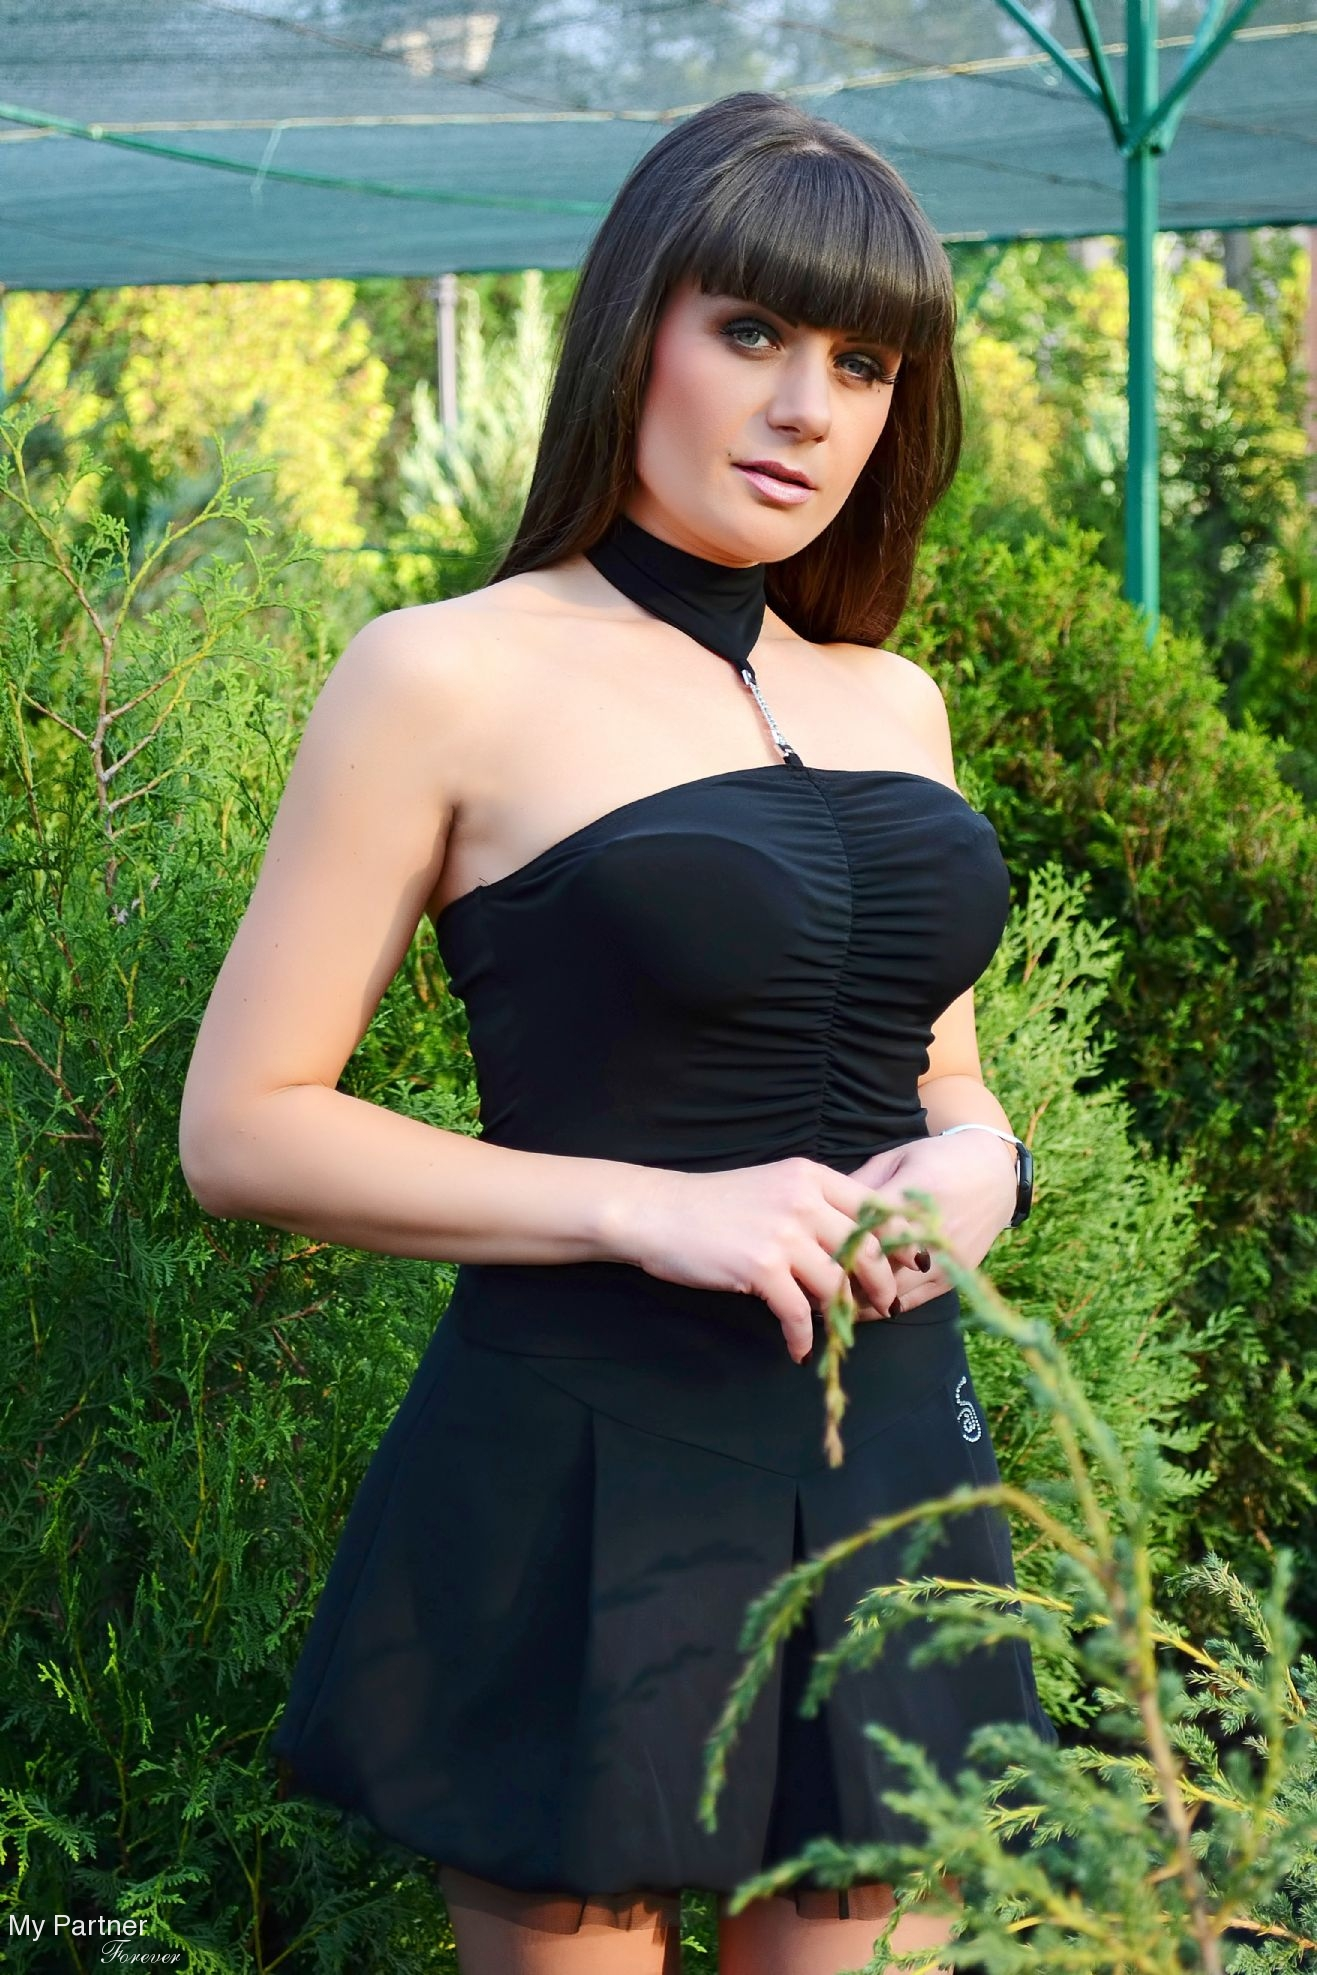 Dating Ukraine women free - single Ukrainian women